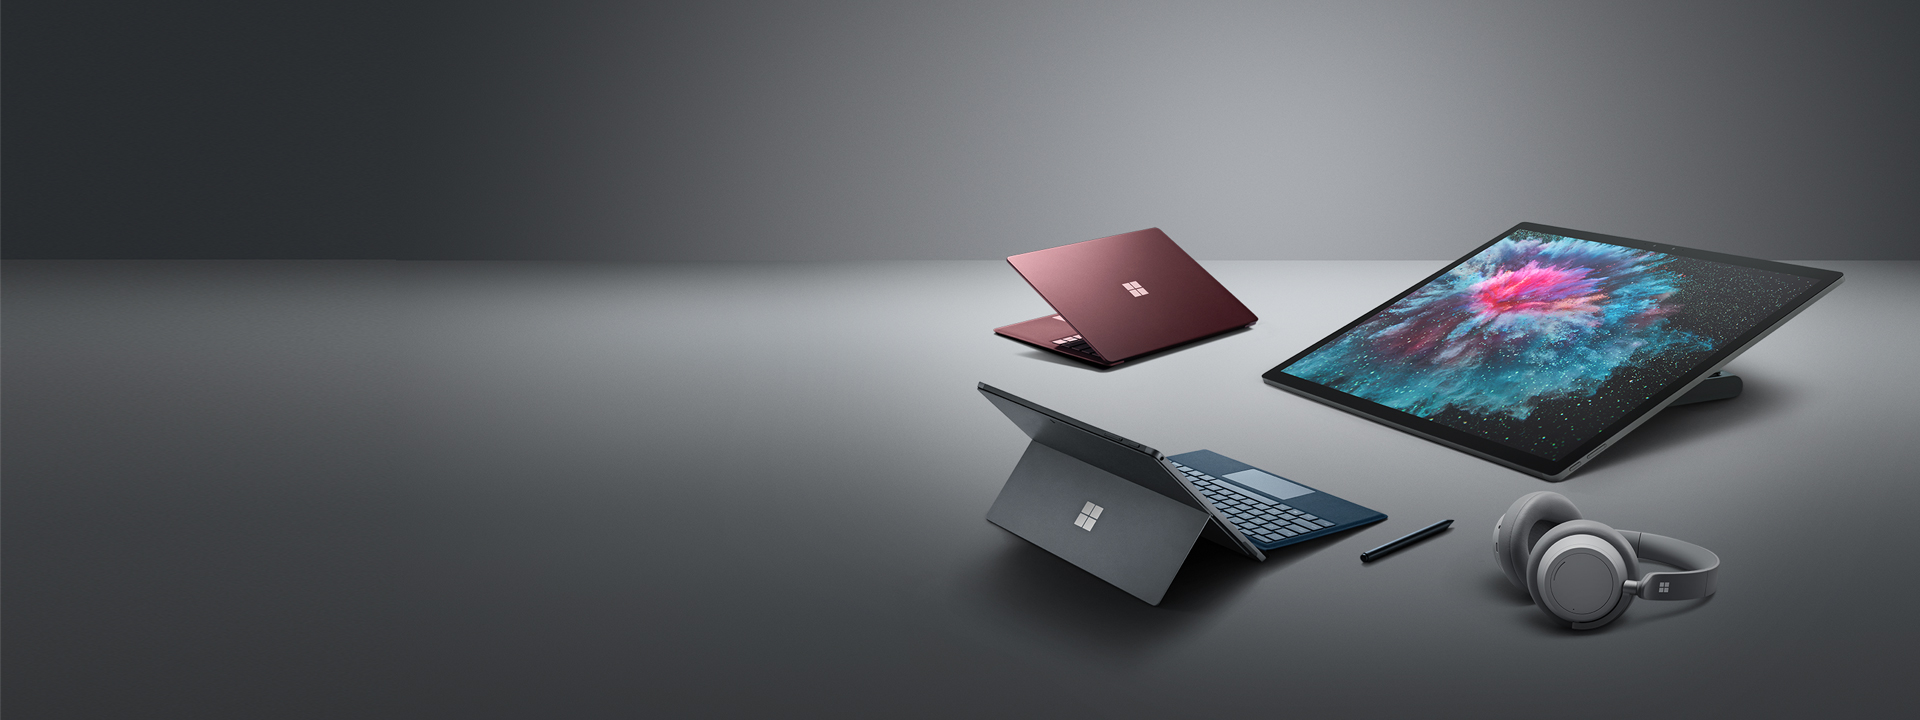 Surface Laptop 2, Surface Pro 6, Surface Studio 2, Surface Headphones and Surface Pen